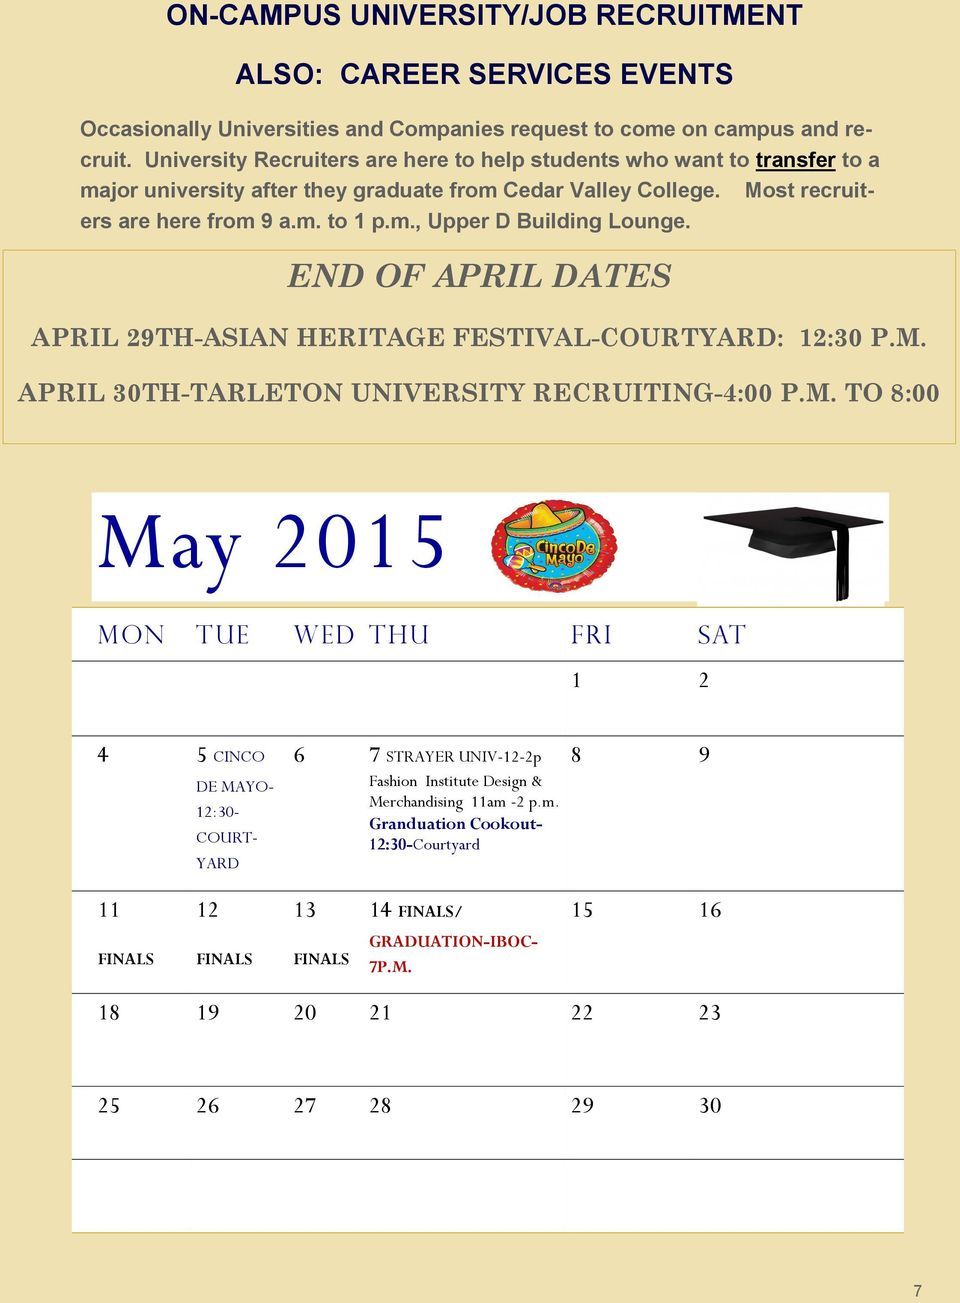 END OF APRIL DATES APRIL 29TH-ASIAN HERITAGE FESTIVAL-COURTYARD: 12:30 P.M.